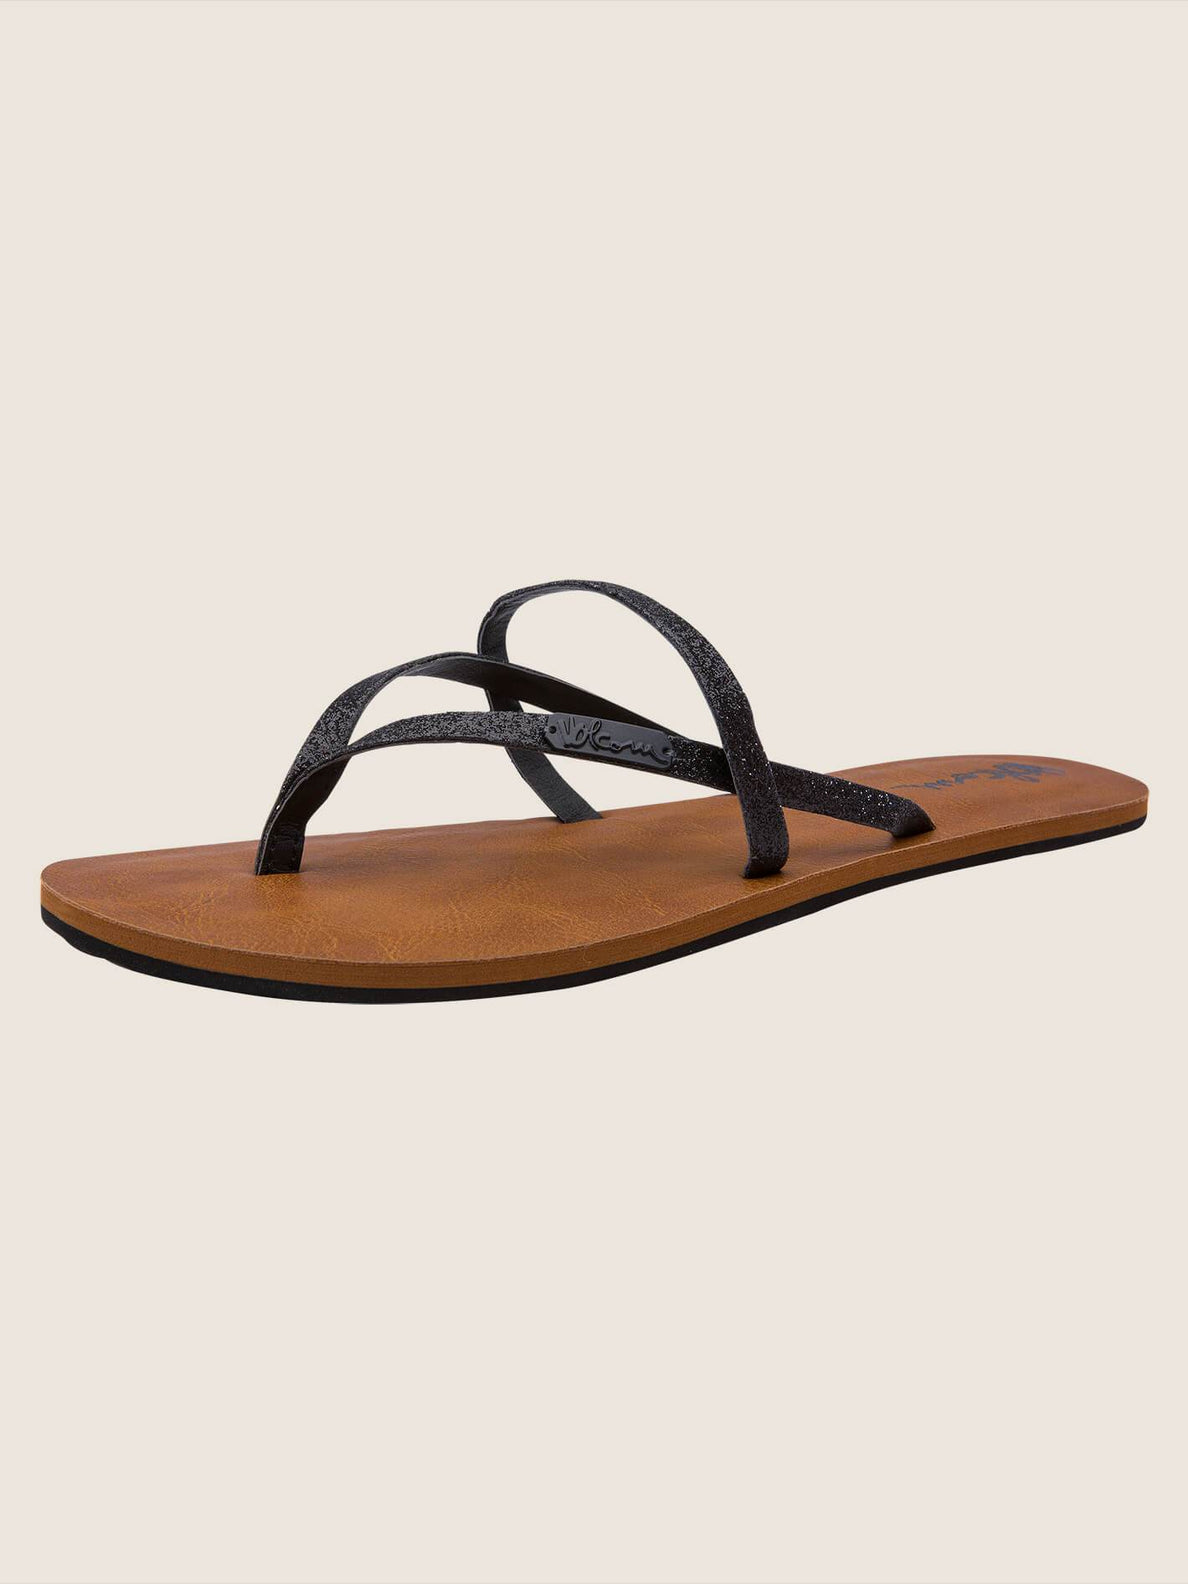 All Night Long Sandals In Black Combo, Back View